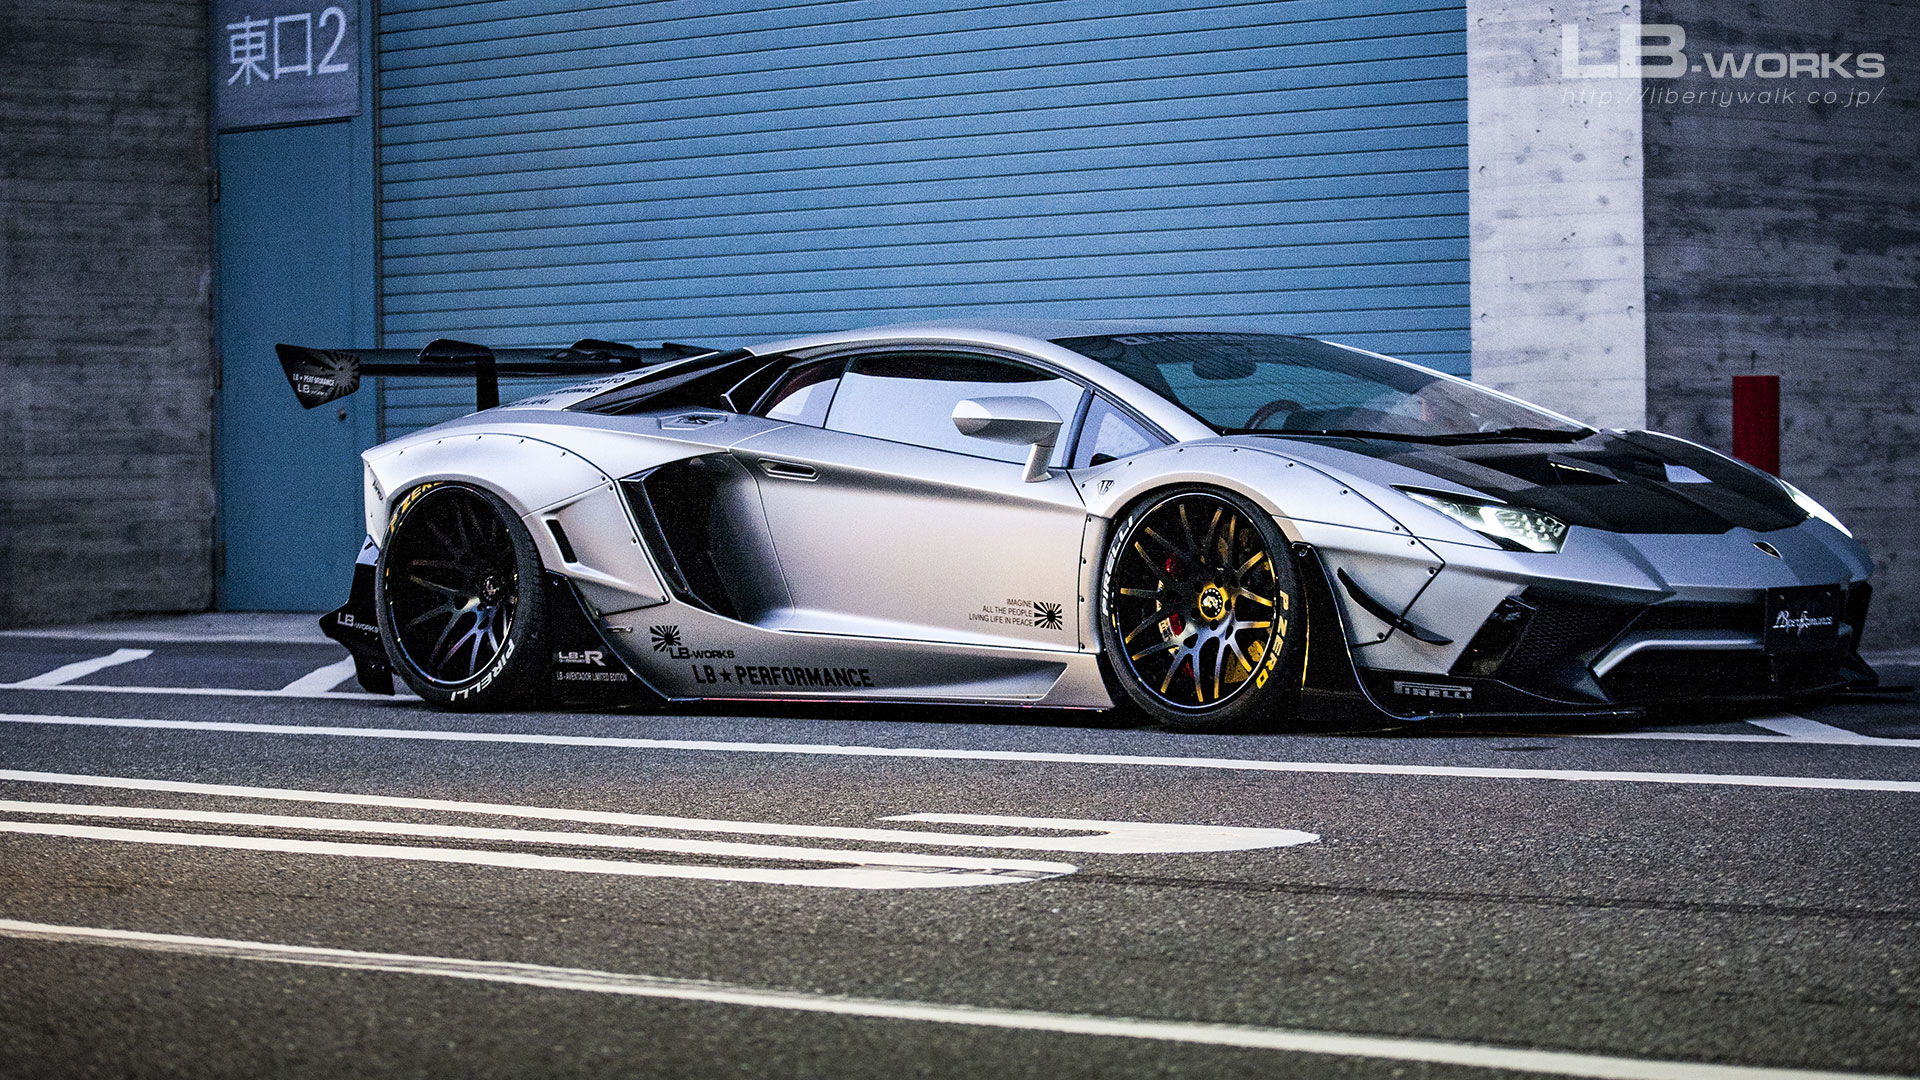 179 LB-WORKS Lamborghini AVENTADOR Limited Edition